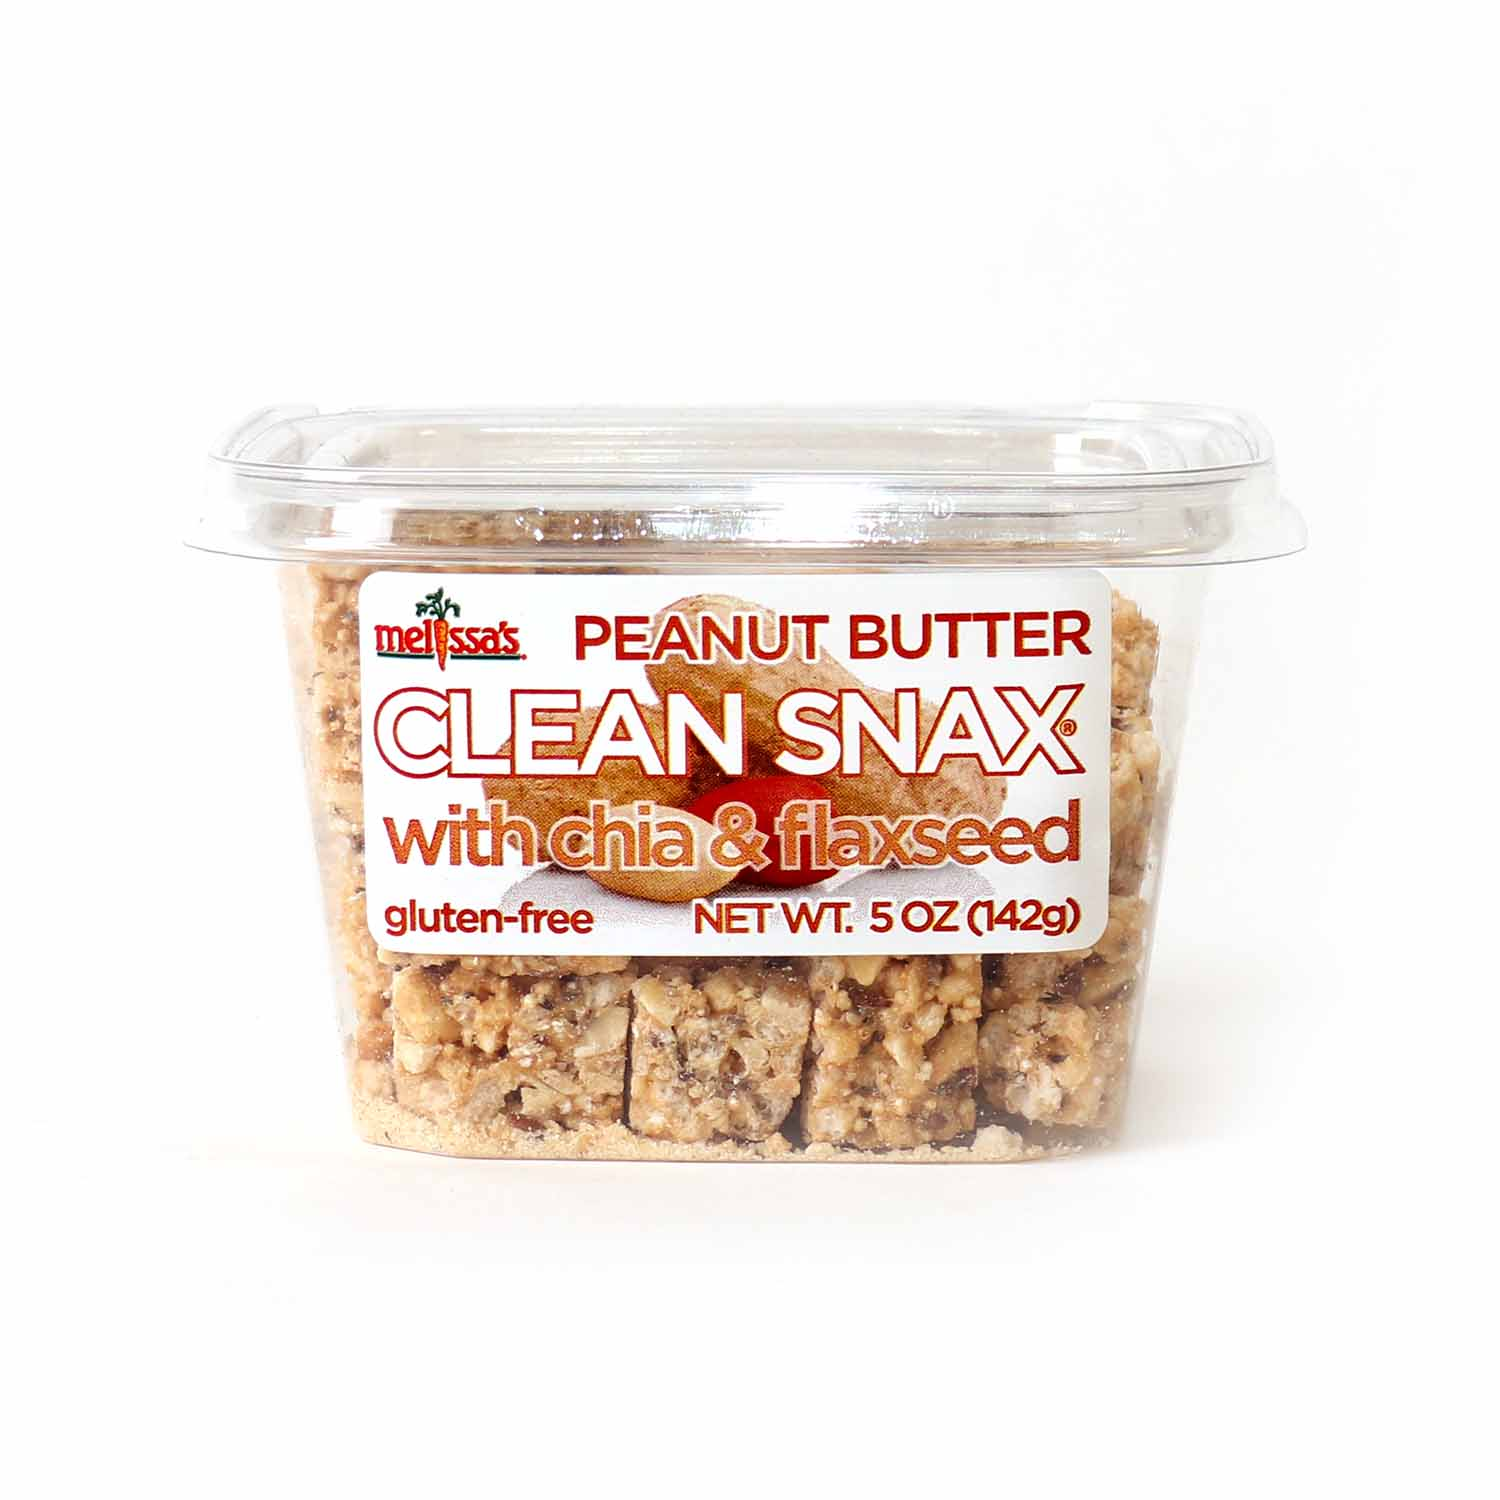 Clean Snax – Peanut Butter